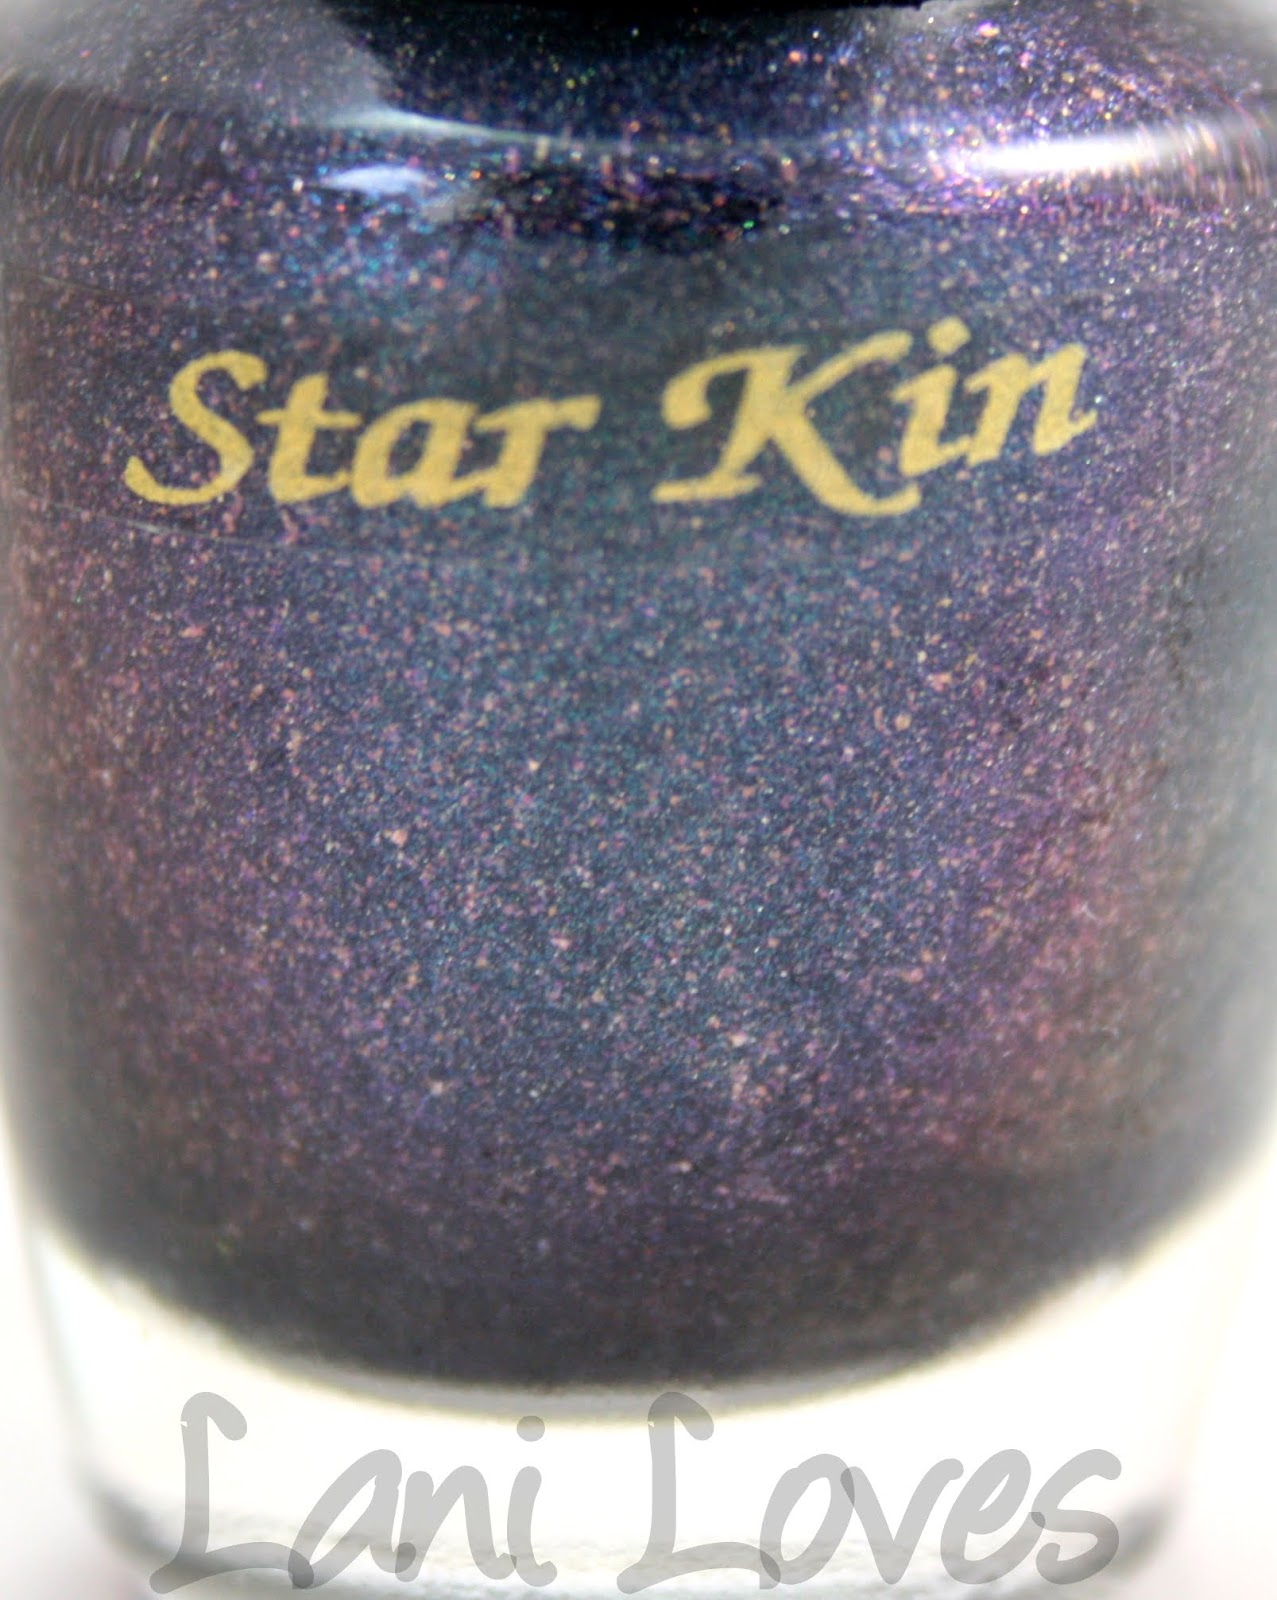 Star Kin Orion